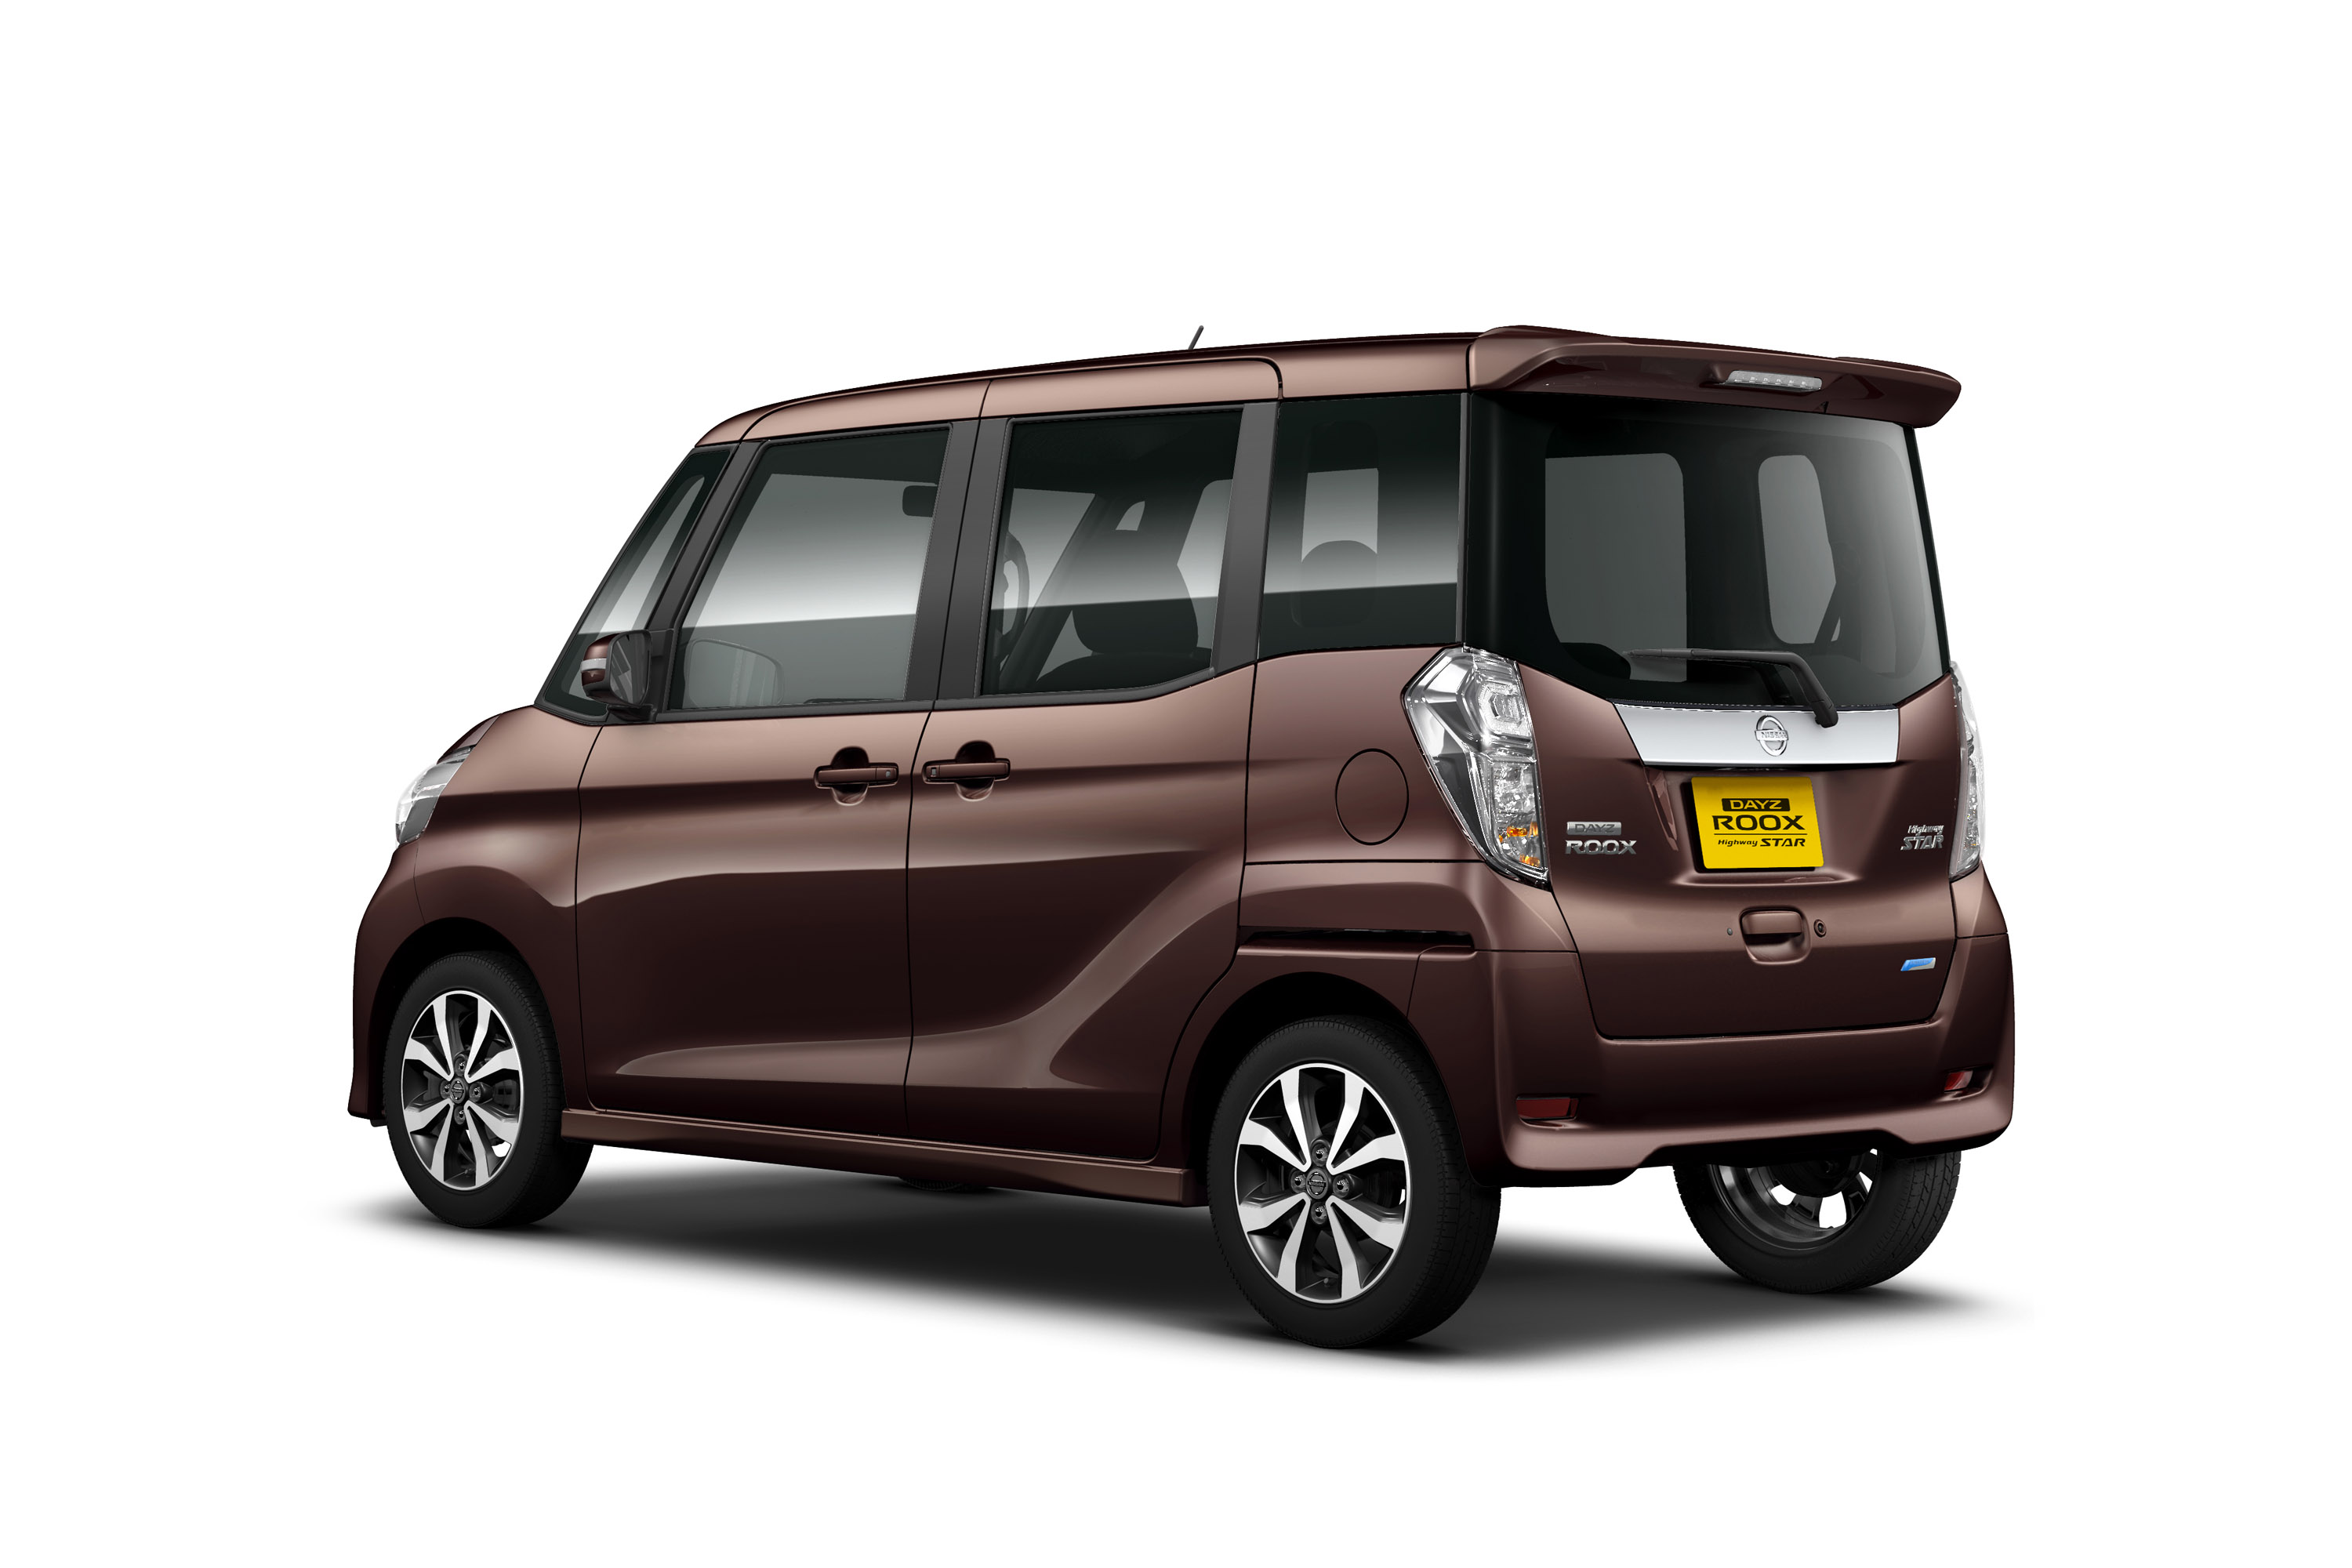 Nissan Roox 2009 - 2013 Microvan #5